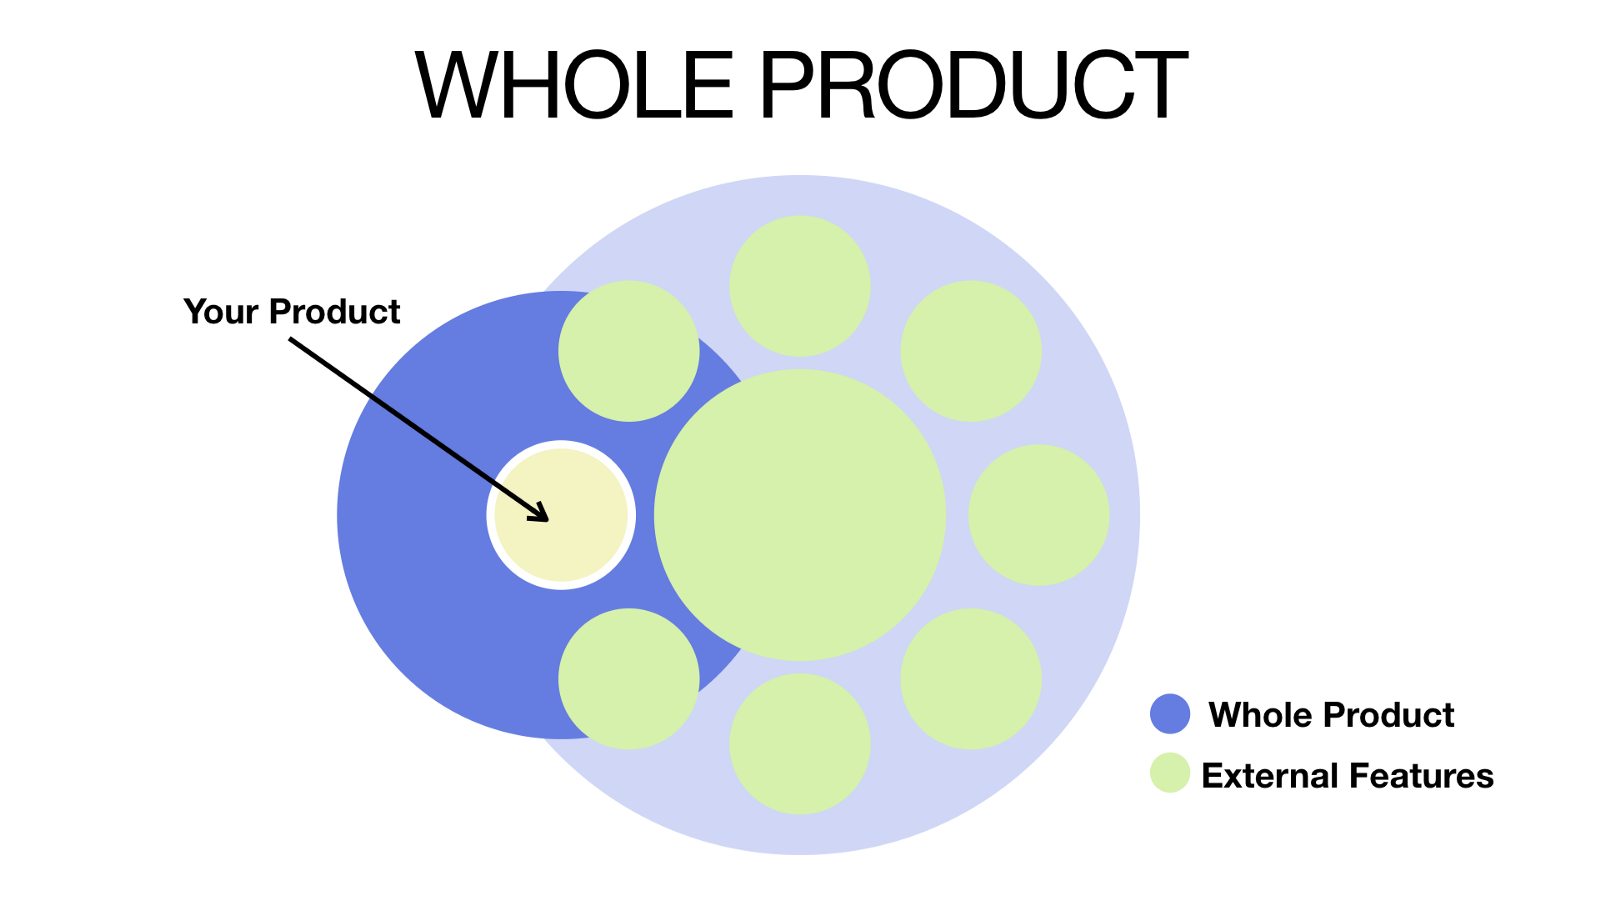 The Whole Product and your product diagram